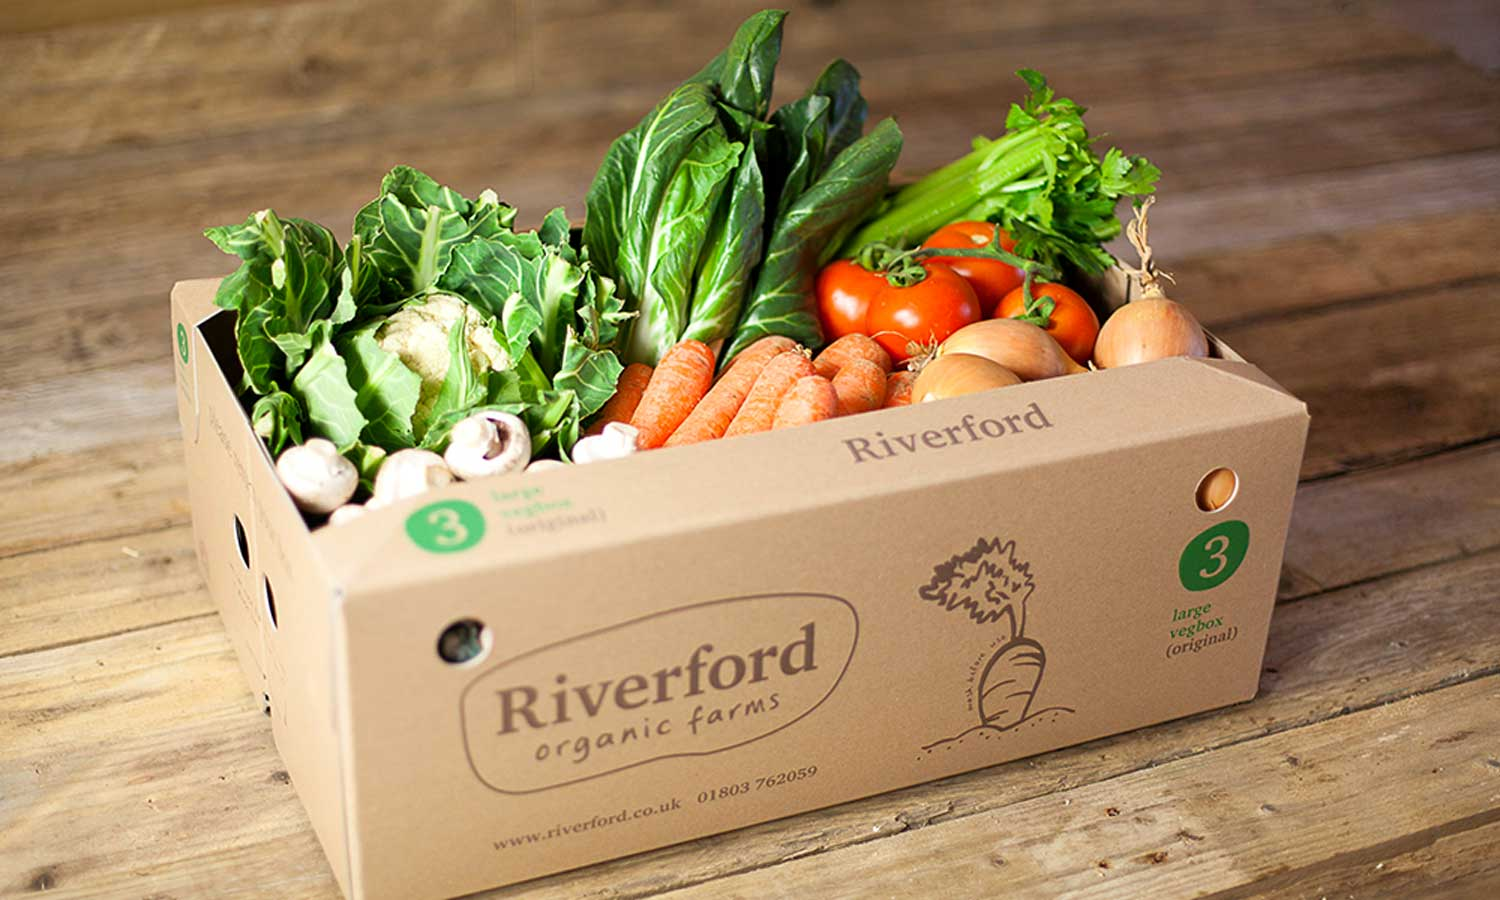 Riverford organic vegetable box on a wooden floor